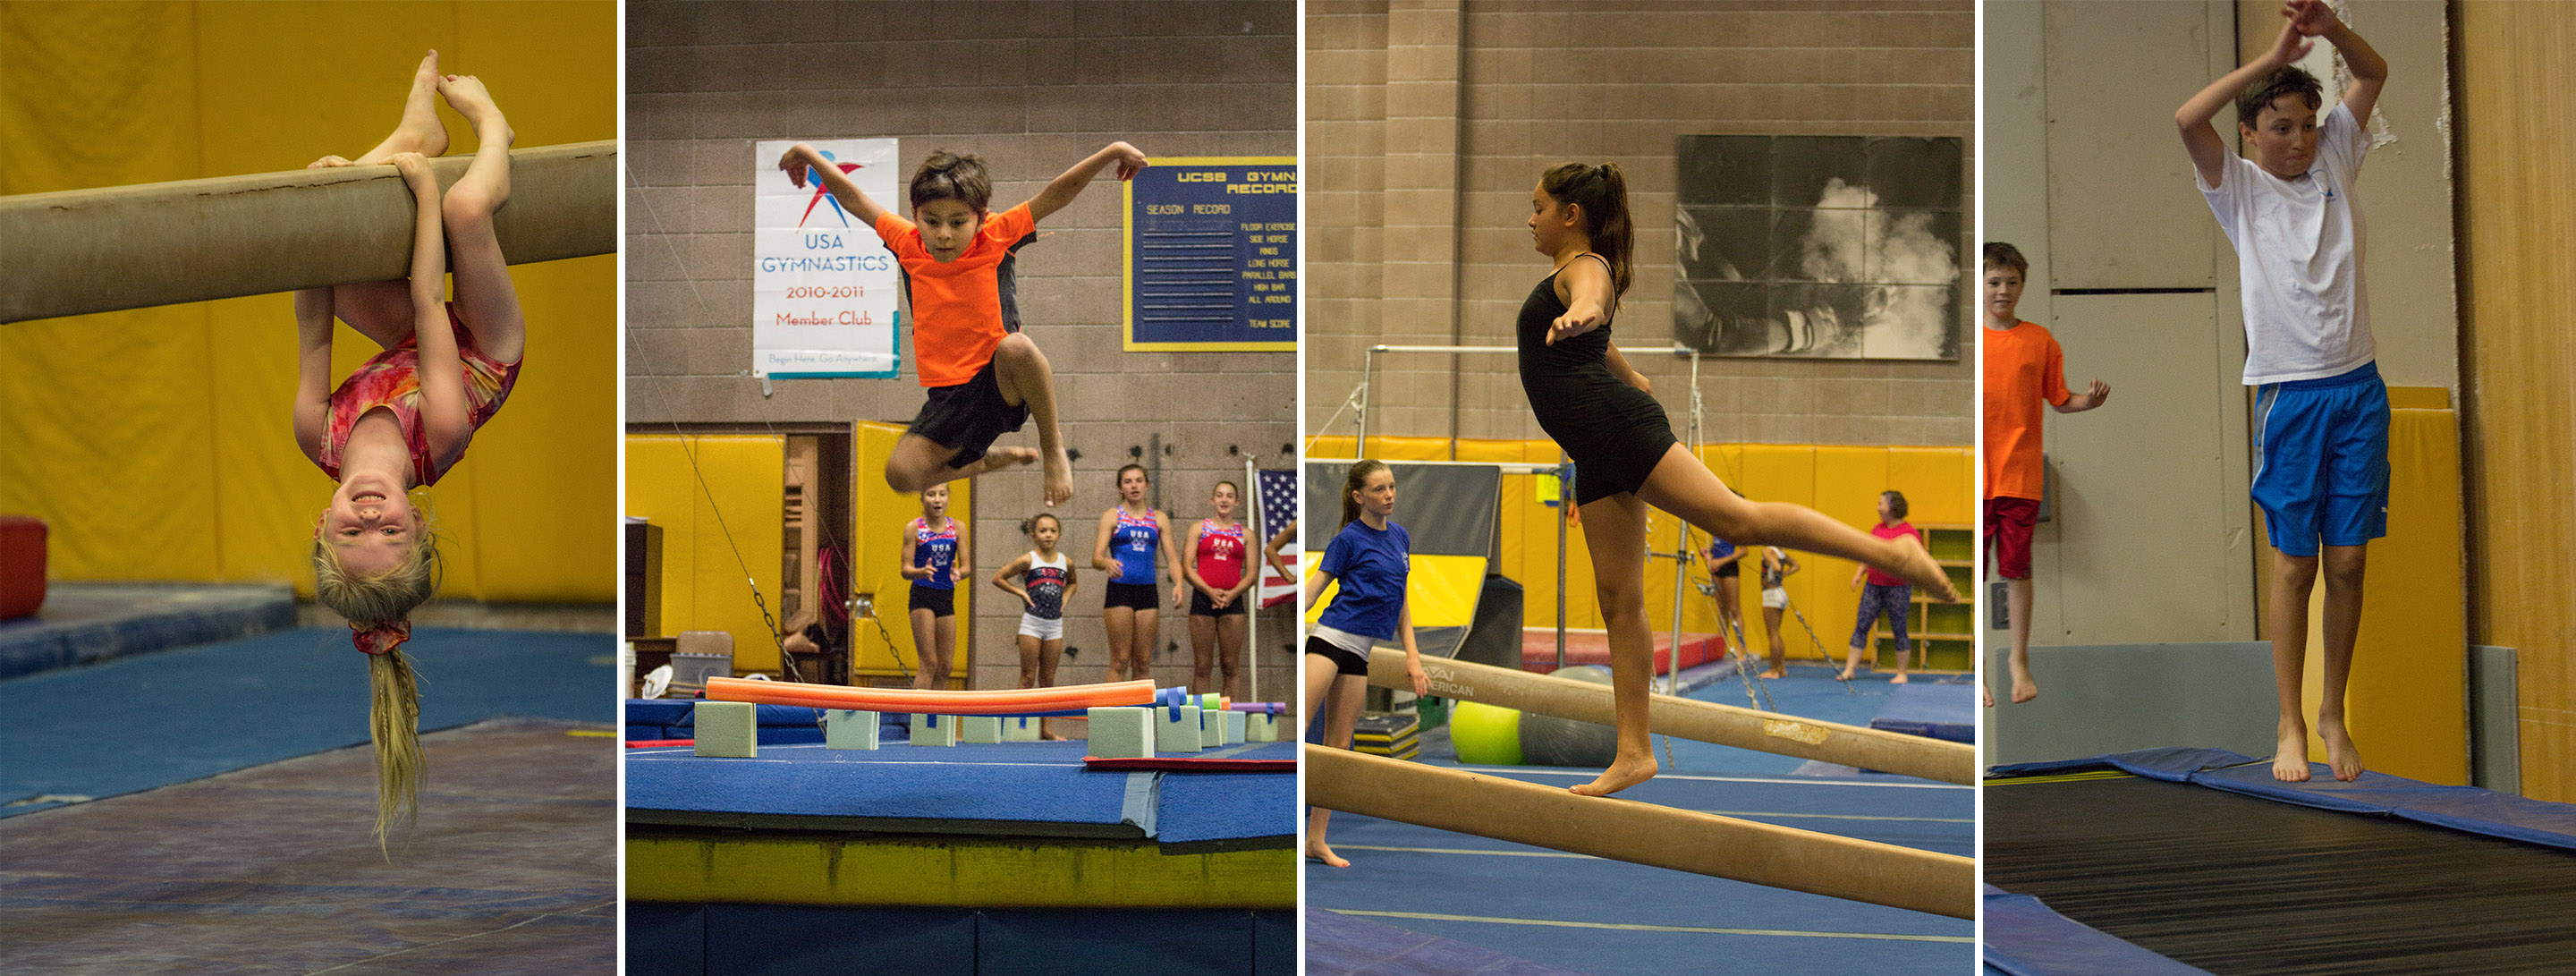 spirals santa barbara gymnastics recreation classes for kids and children